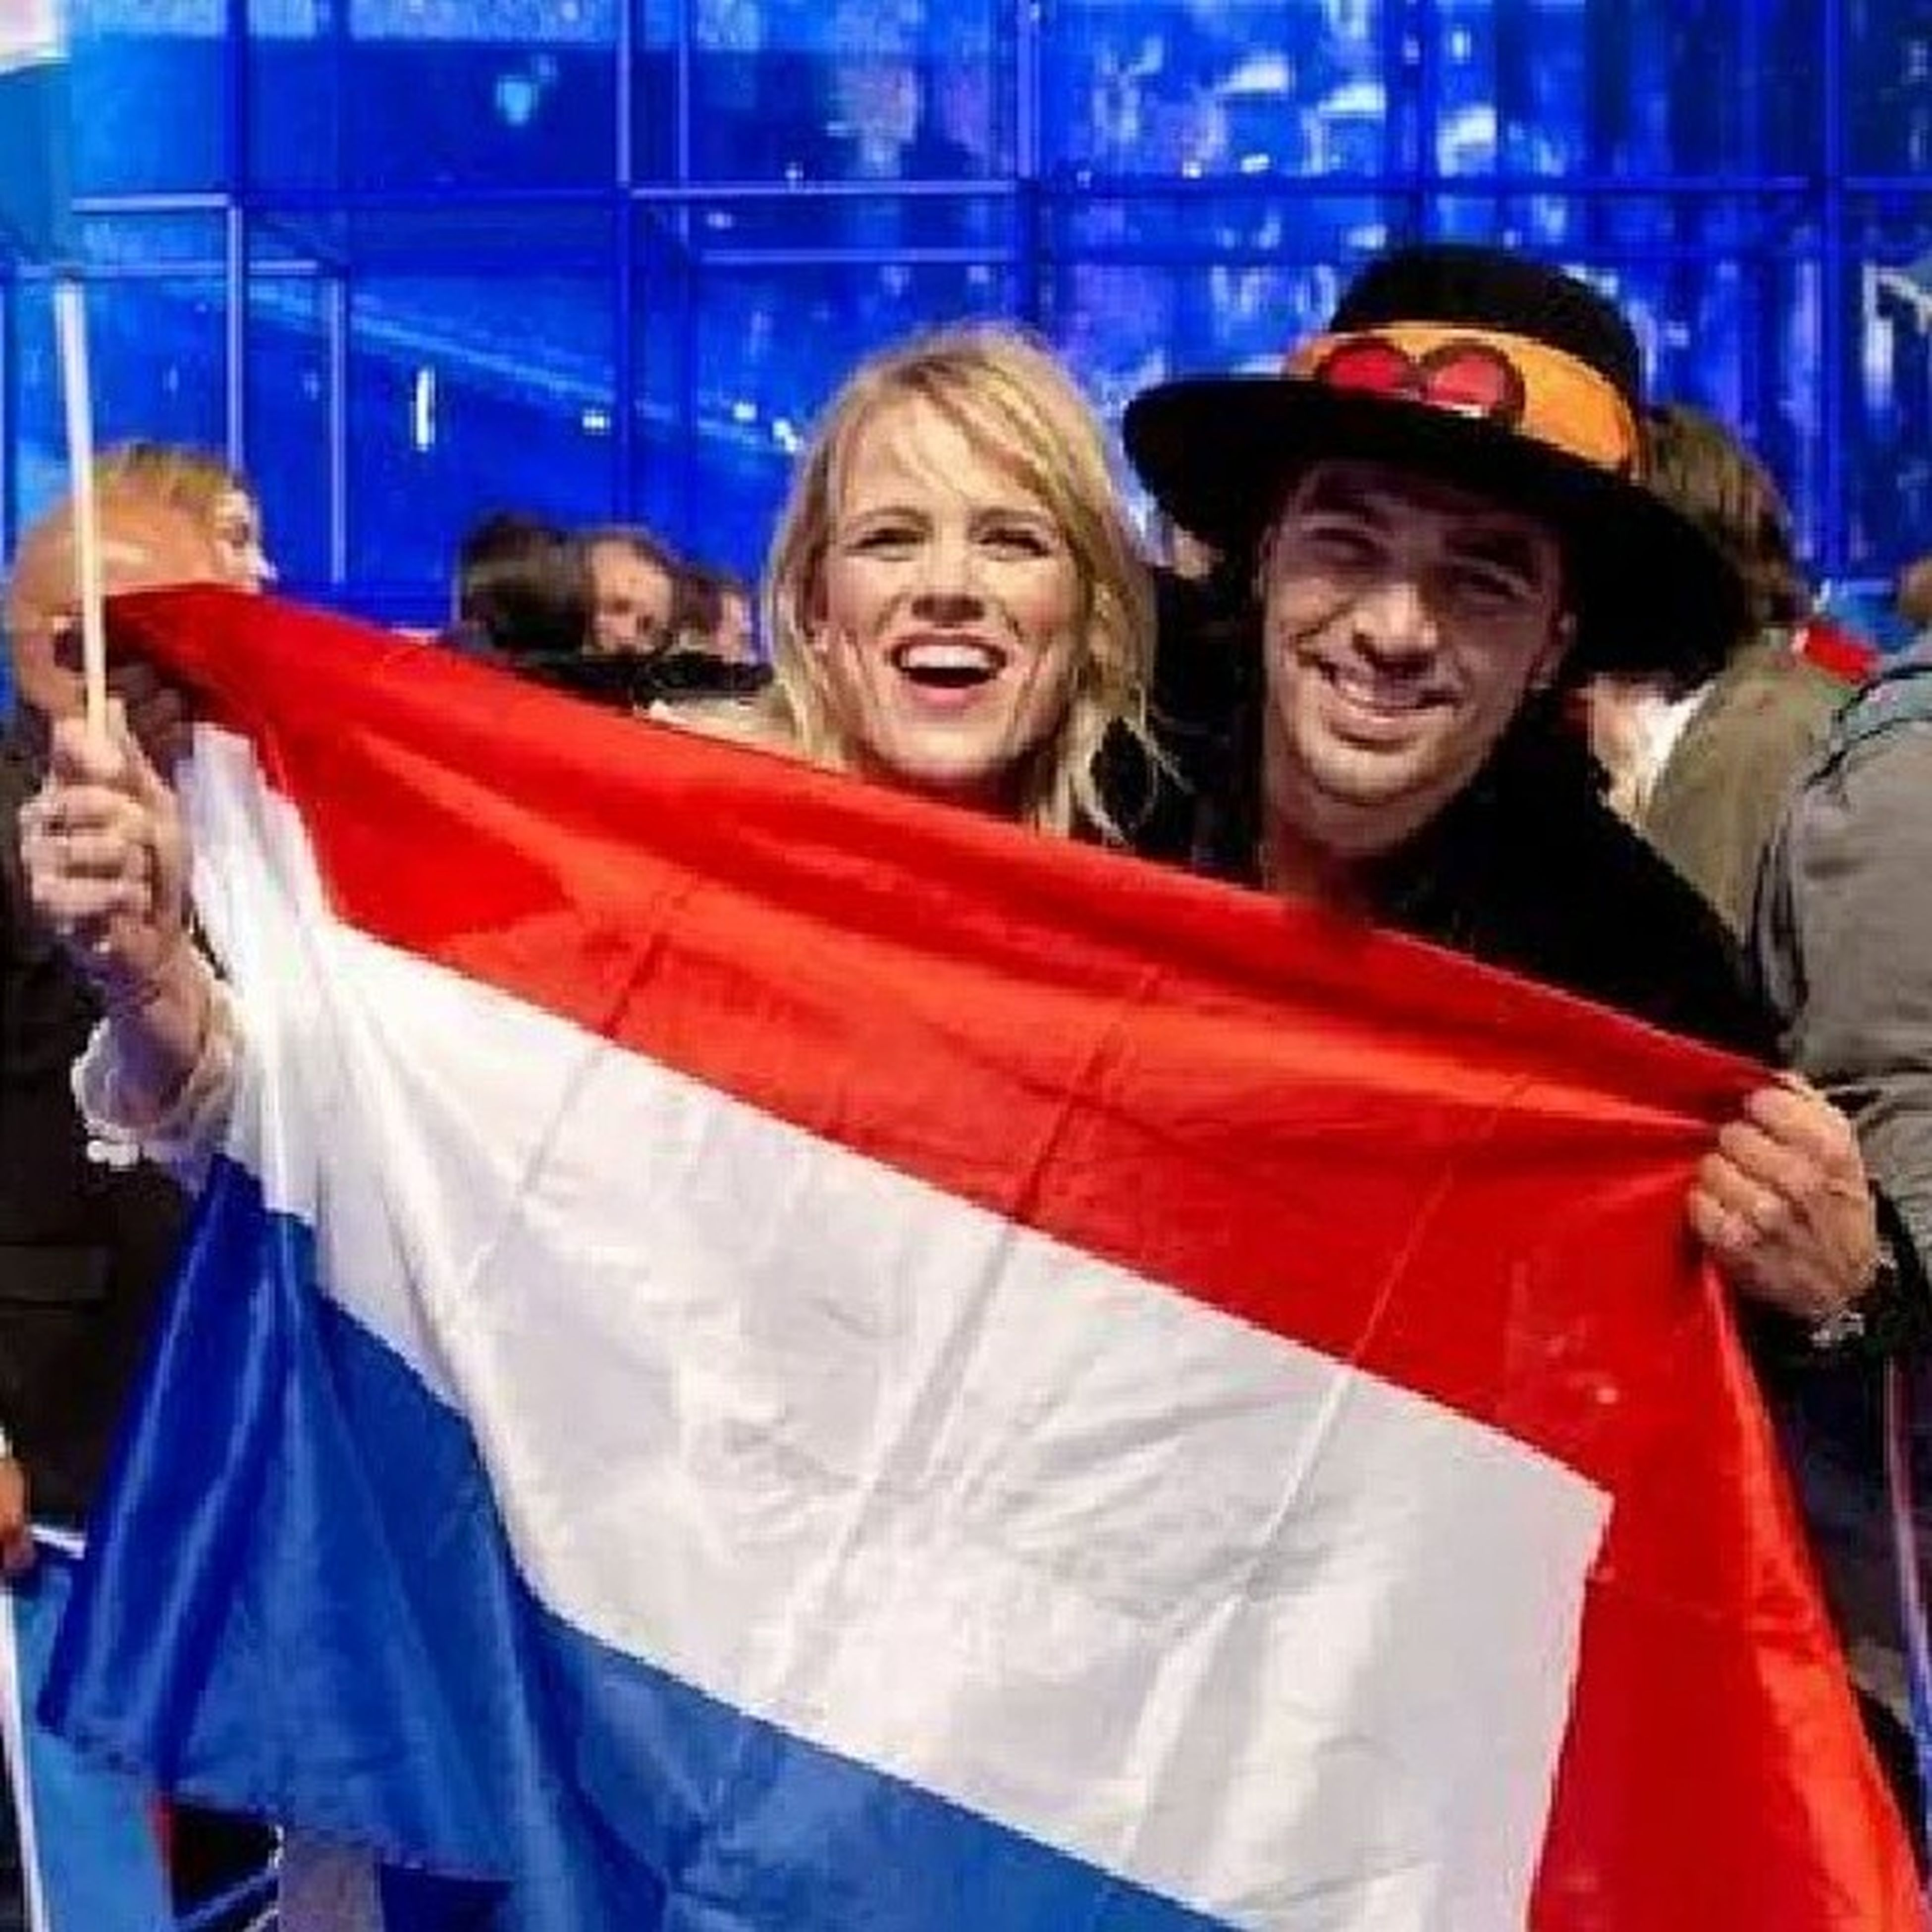 Tonight The Finals Of The Eurovision Songcontest 2014!!! I Hope The Common Linnets From The Netherlands To Win This Year!!! Please Vote For Them If You Want Them To Win And Live Outside The Netherlands In Europe!!! :-D <3 Esc14 Commonlinnets Eurovision